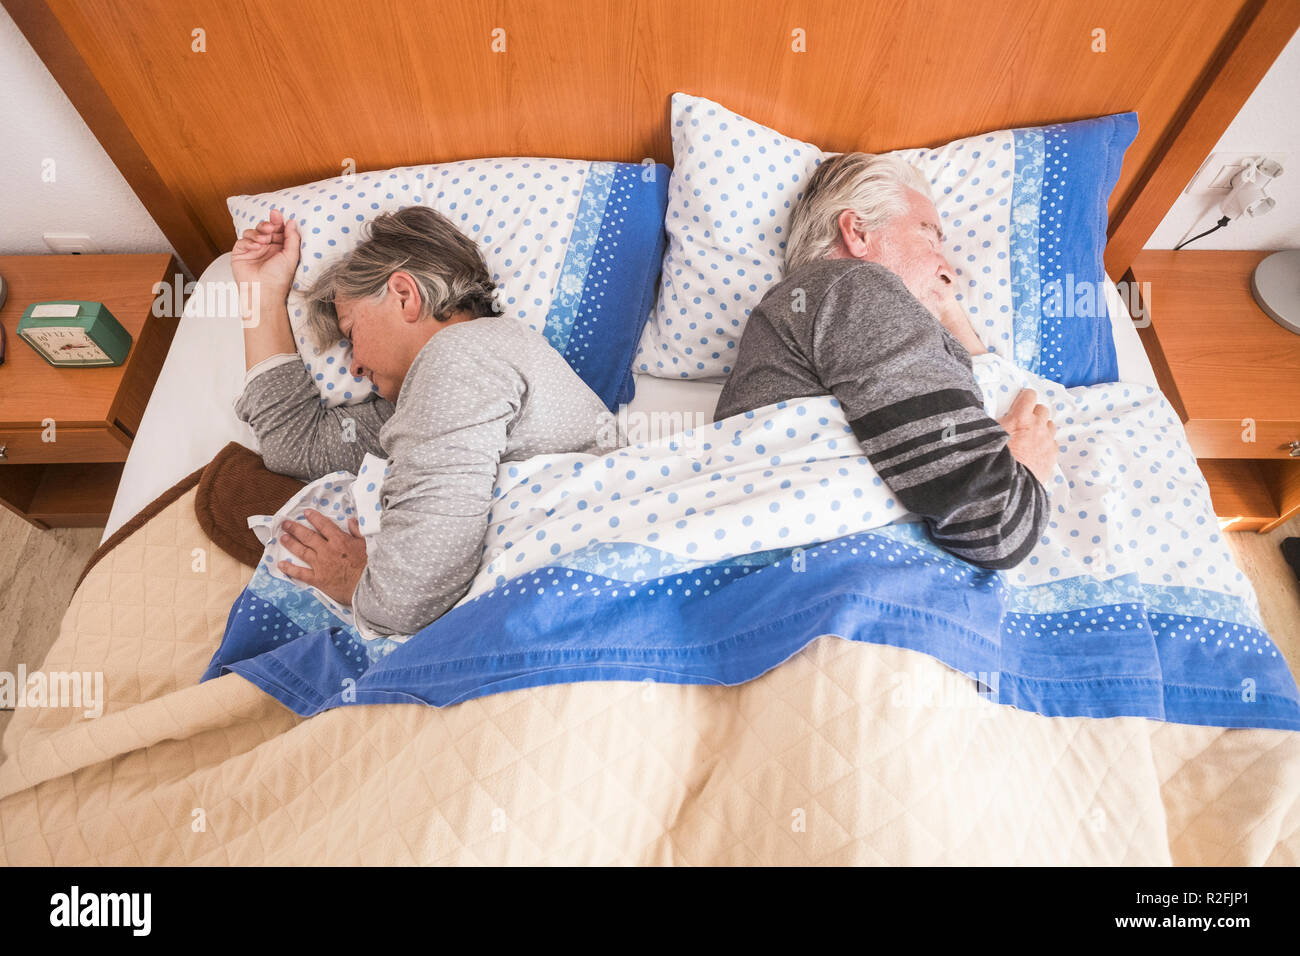 morning time wake up for adult senior couple at home in the bed. sleep together in the light from the window, day life concept. Stock Photo